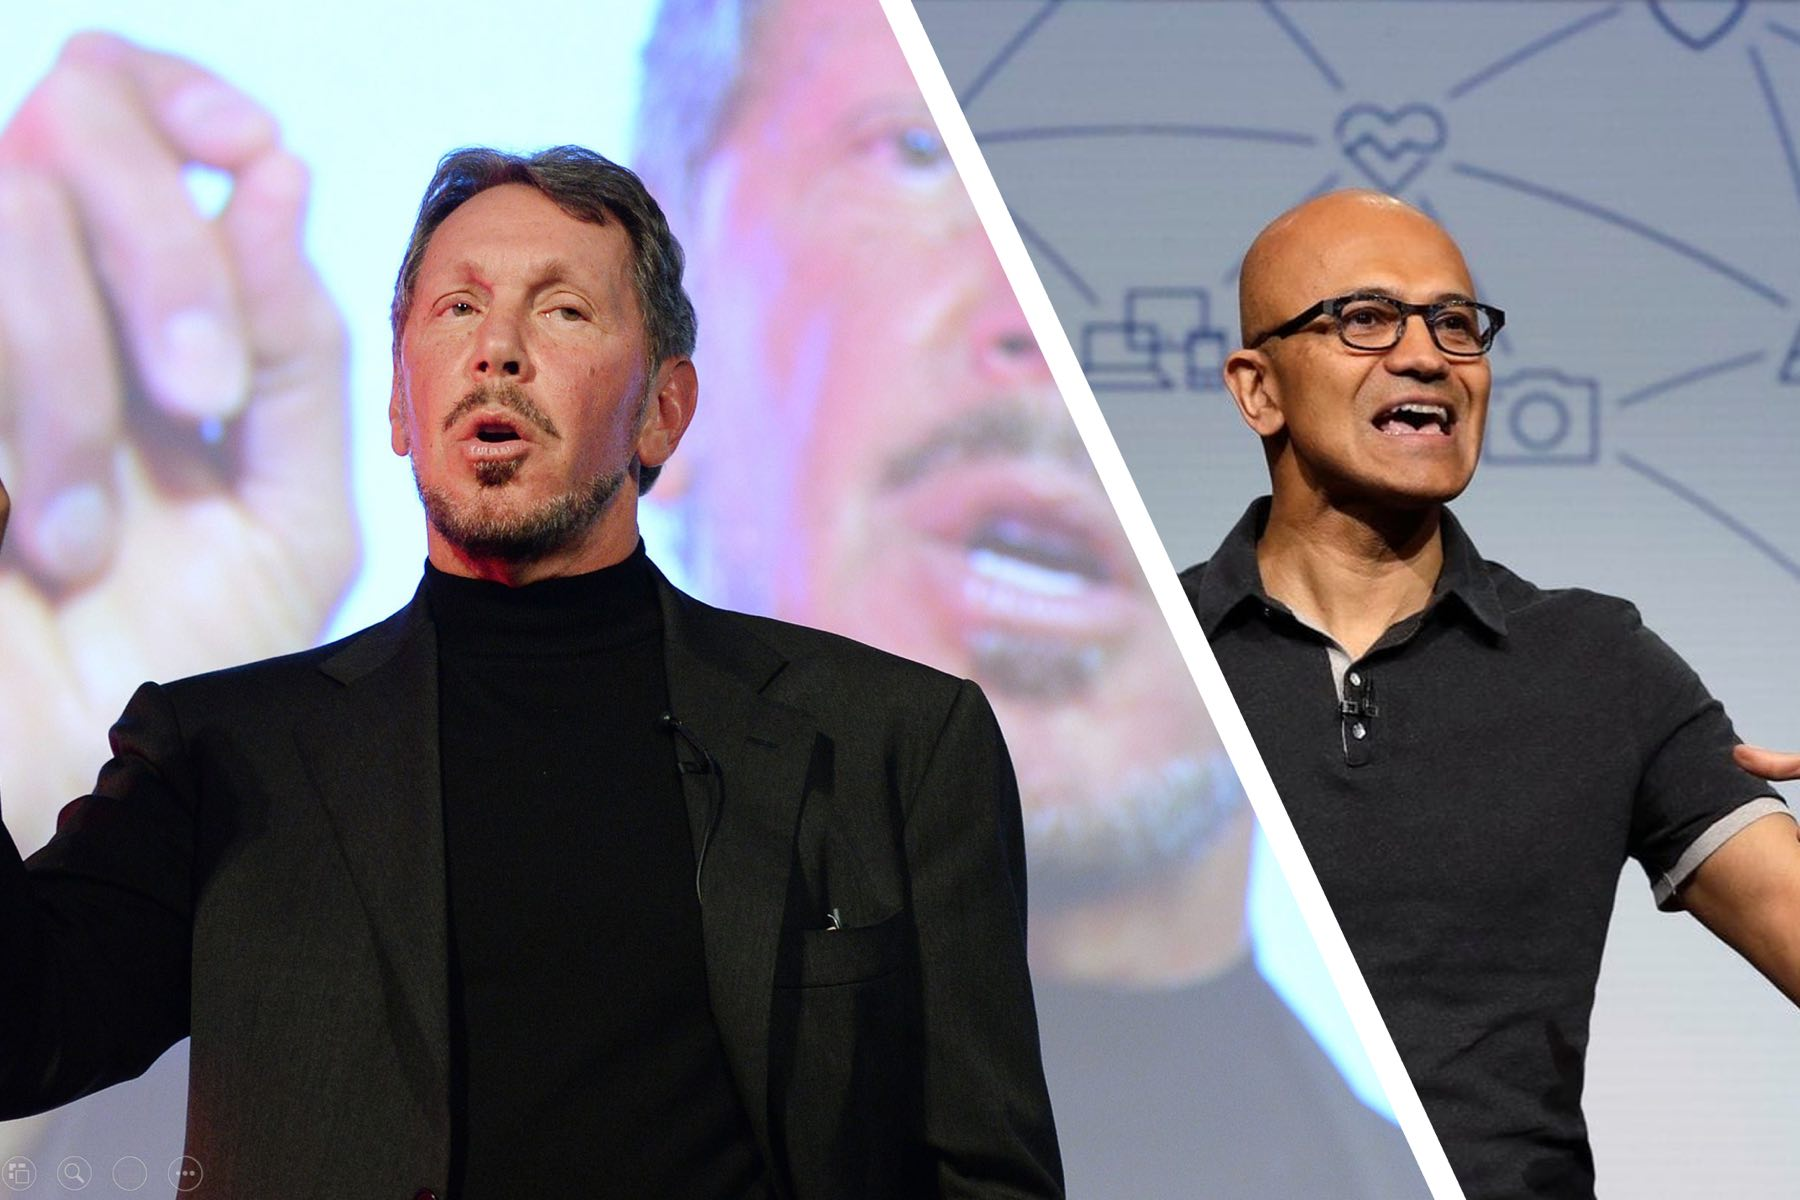 Larry Ellison and Satya Nadella Speaking